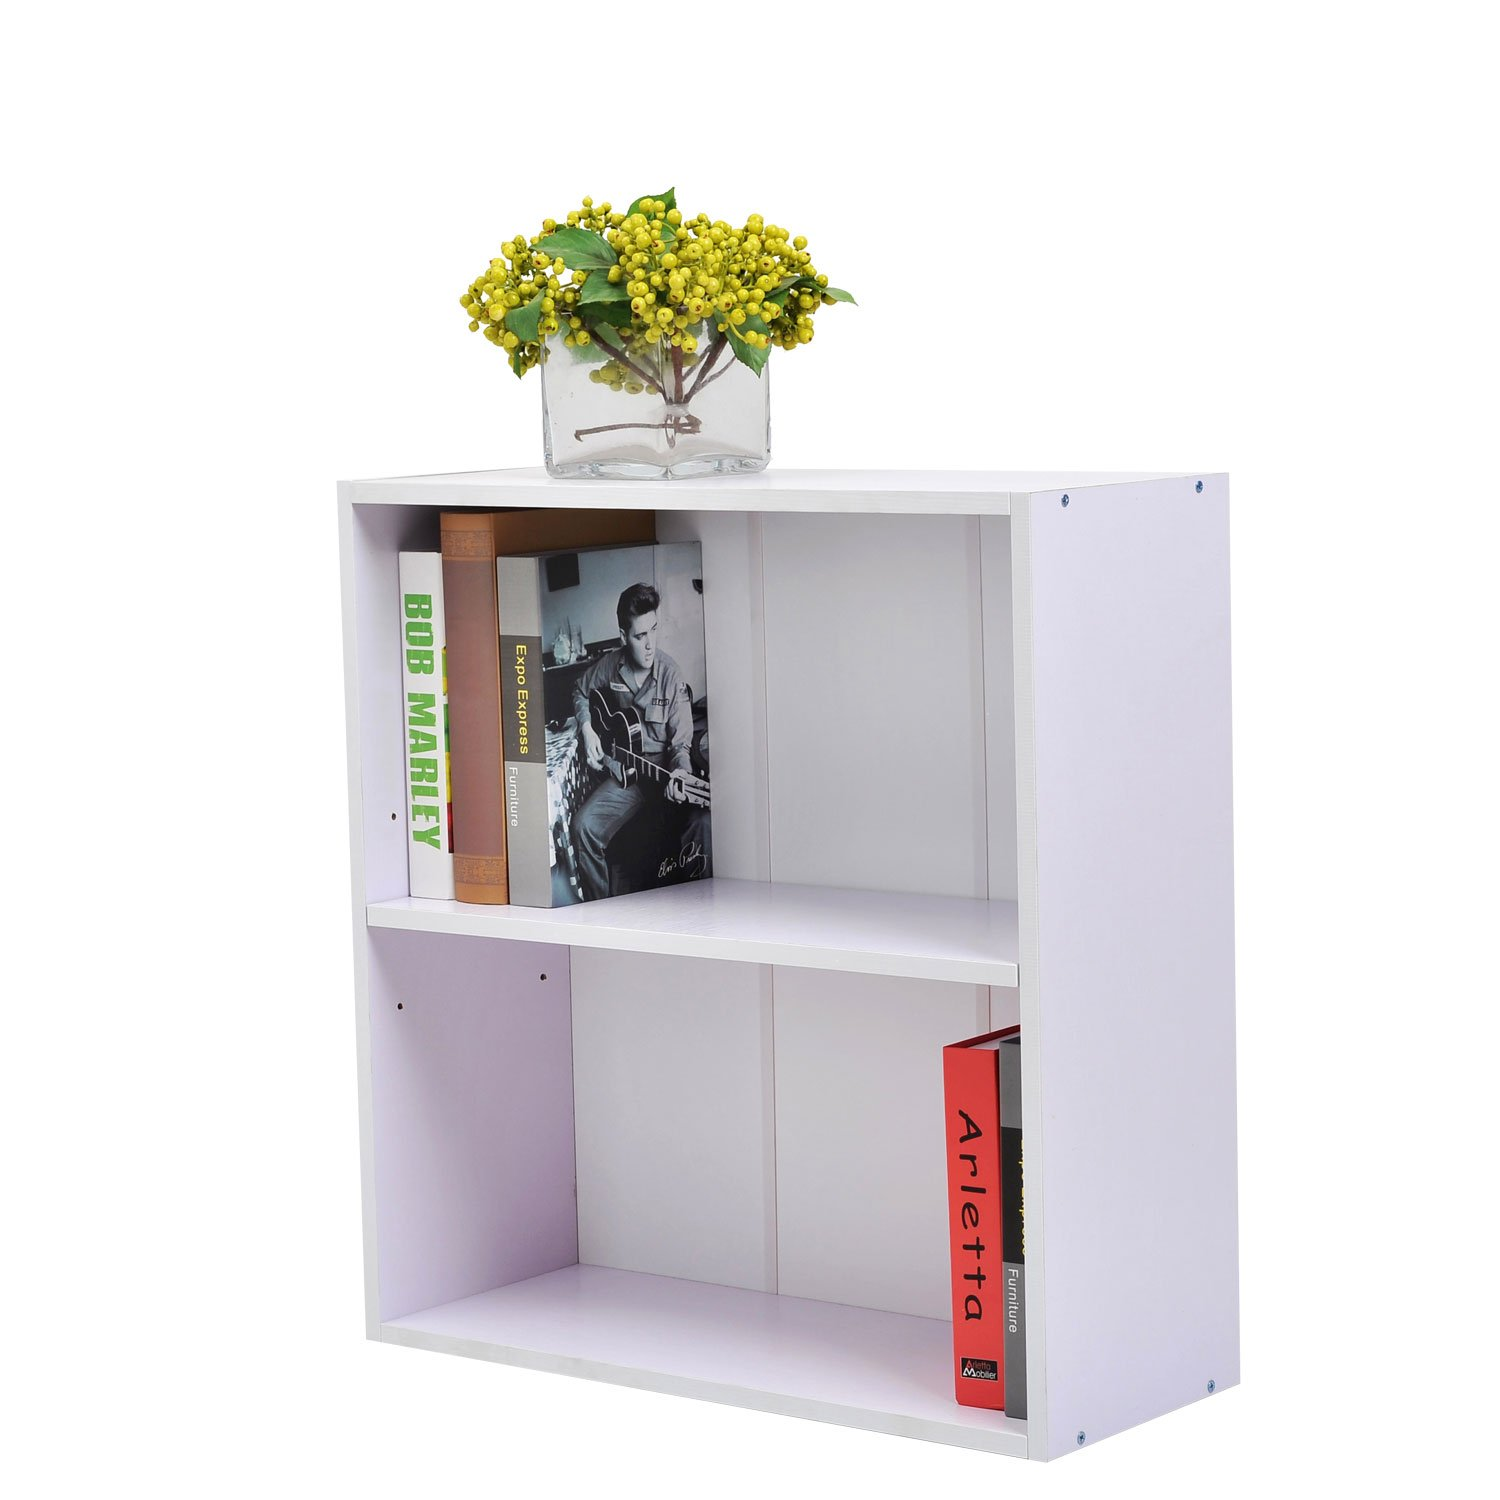 Homcom Wooden Wood 2 Tier Storage Unit Chest Bookshelf Bookcase Cupboard Cabinet Home Office Furniture New (White)